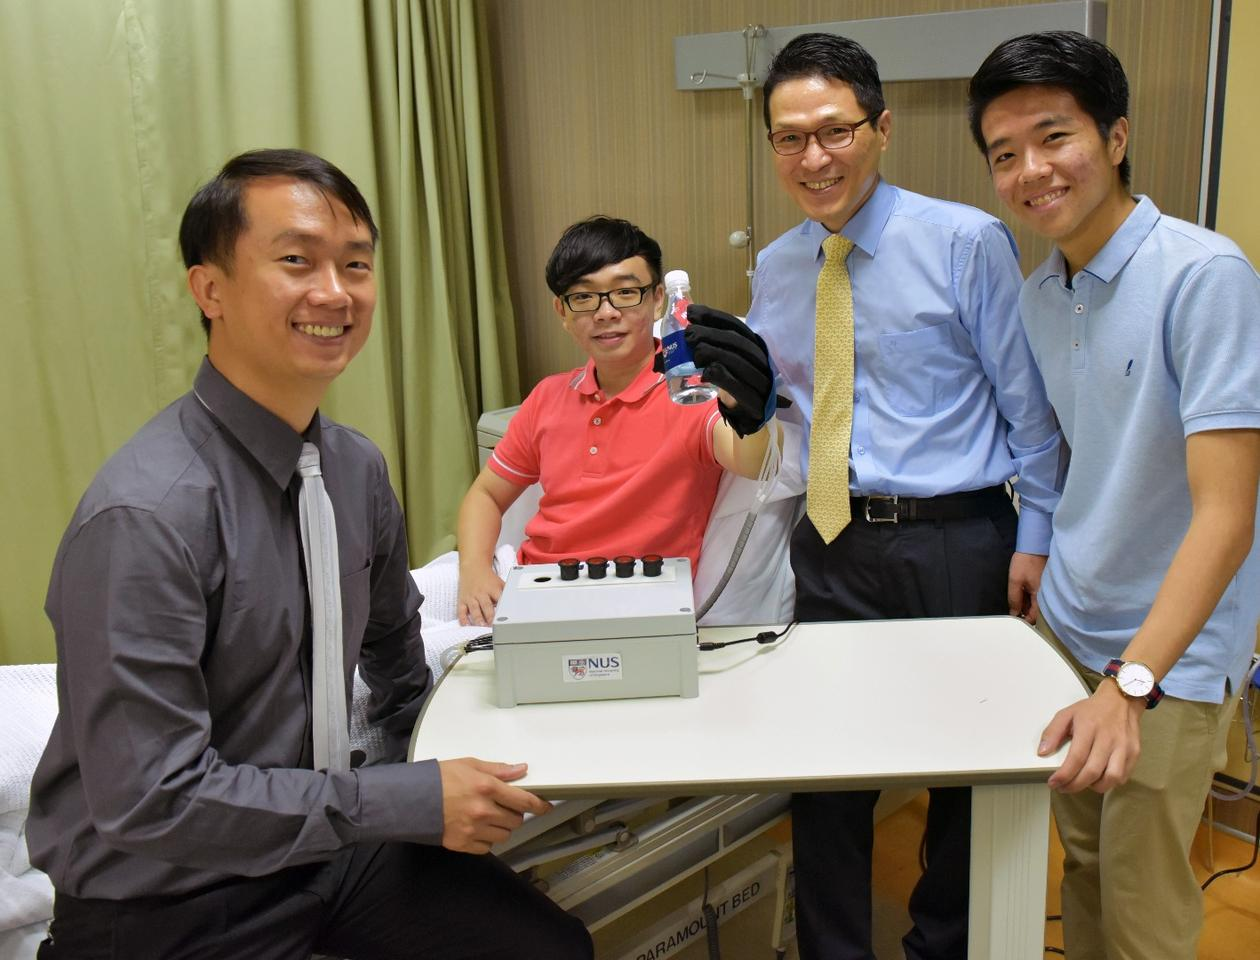 A research team from the National University of Singapore has developed a lightweight and smart robotic glove that helps in rehabilitation of patients who've lost their hand functions through injury or nerve-related conditions